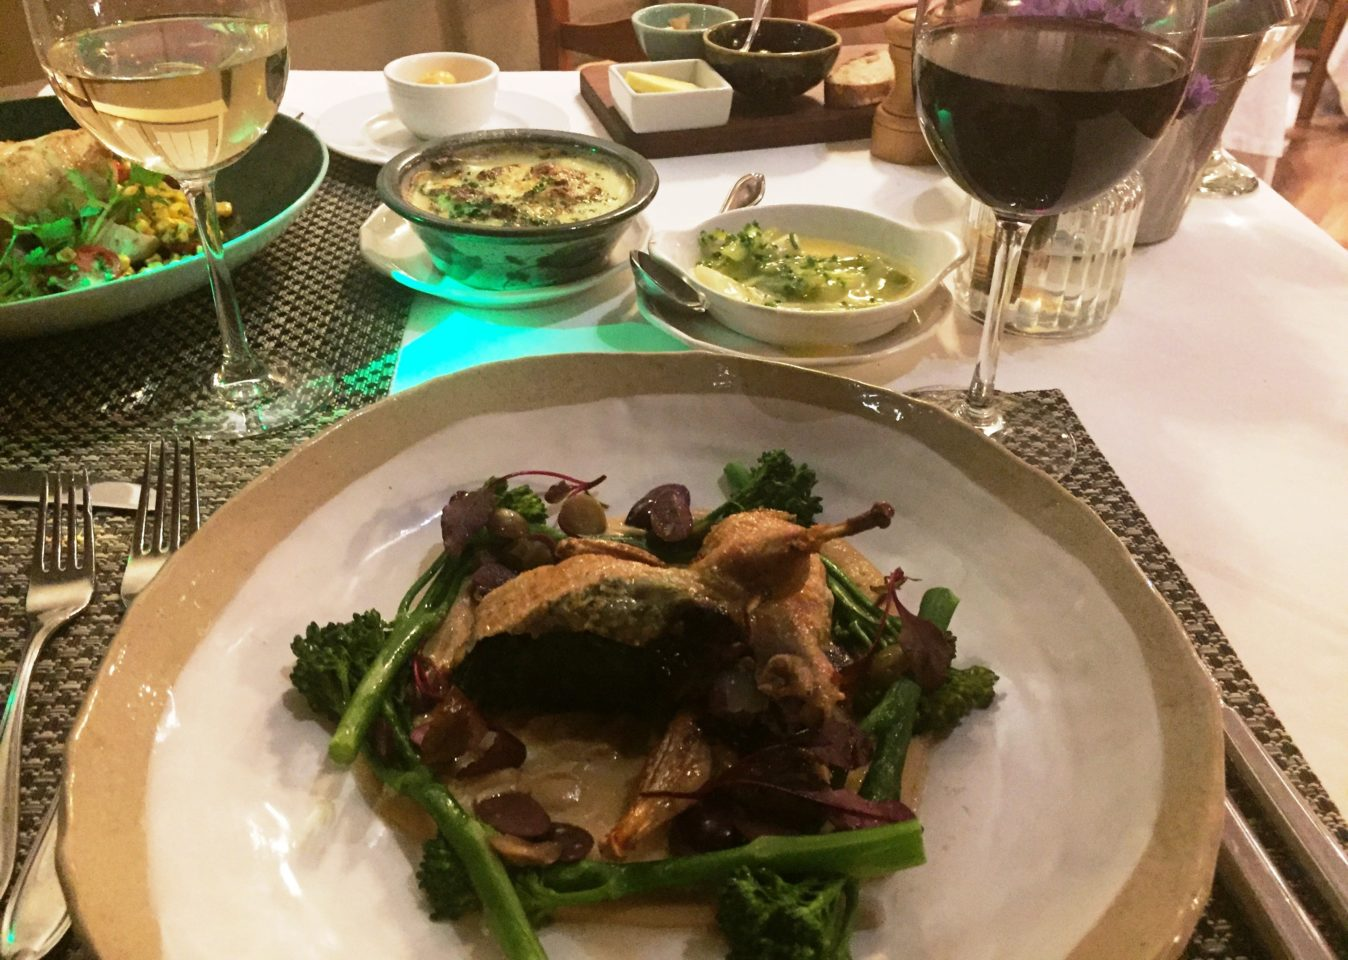 Stuffed Quail at Helena's Restaurant of the Coopmanhuijs Boutique Hotel & Spa